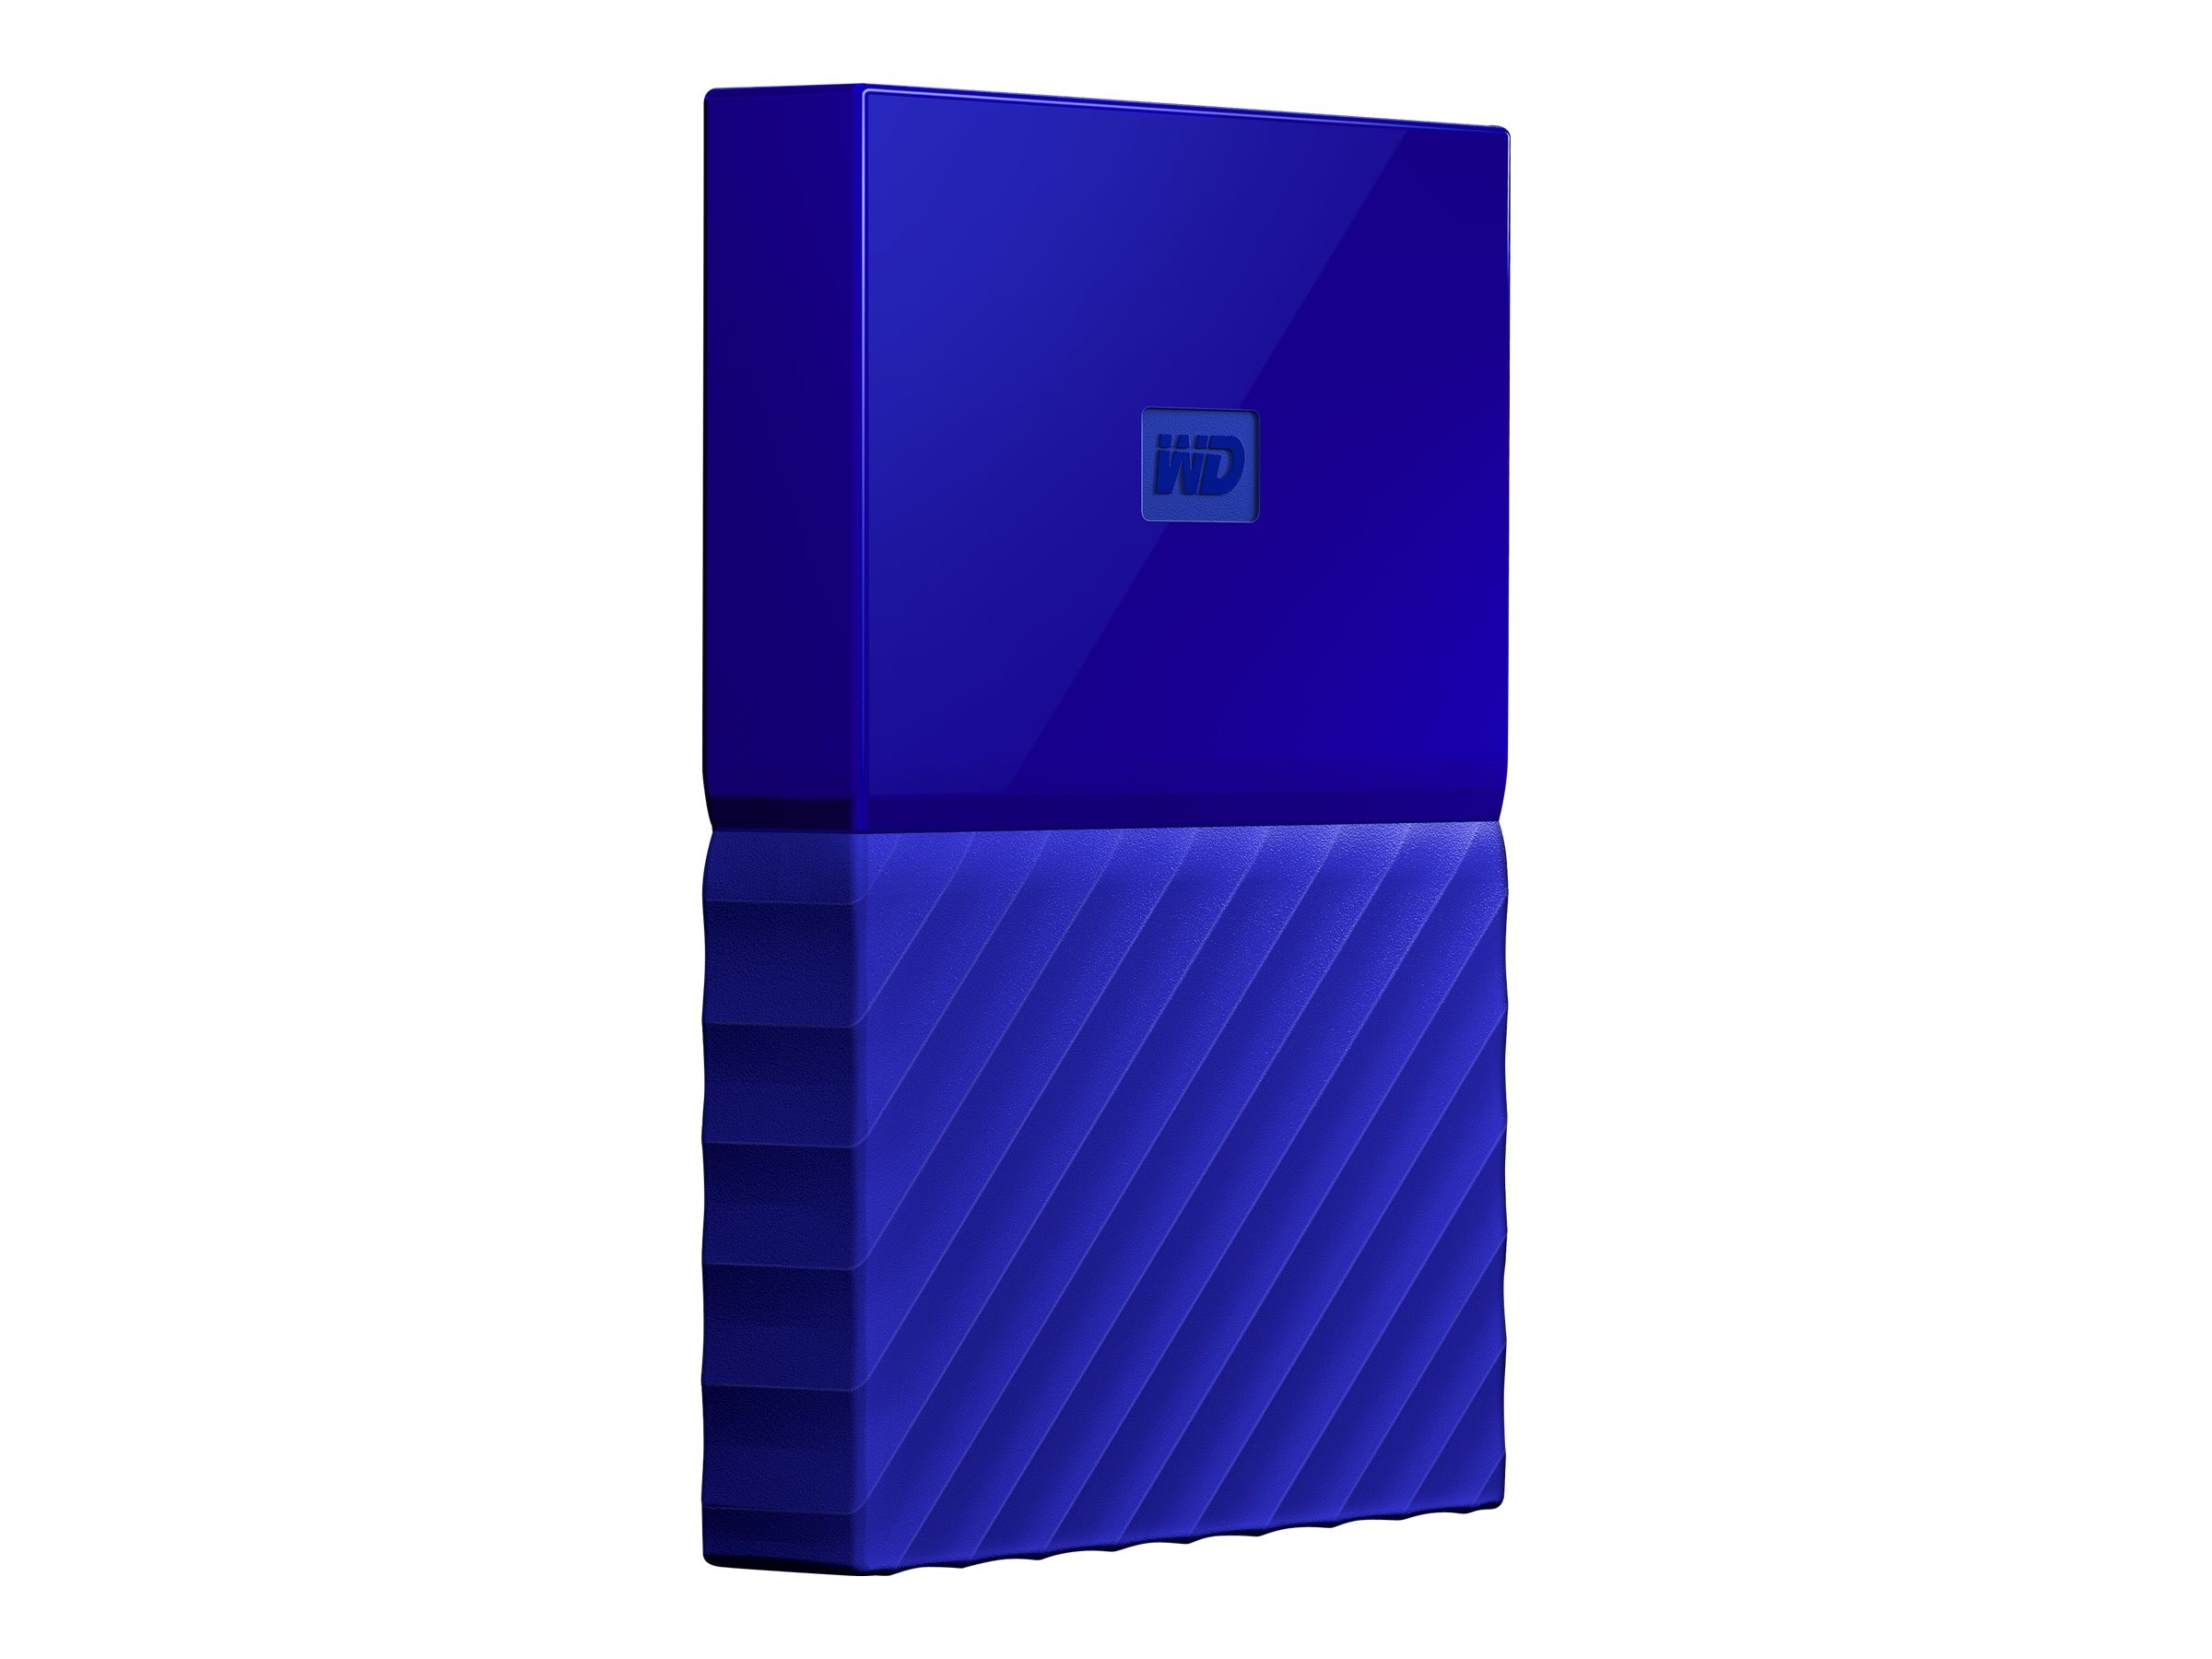 WD 4TB My Passport USB 3.0 Portable Hard Drive - Blue, WDBYFT0040BBL-WESN